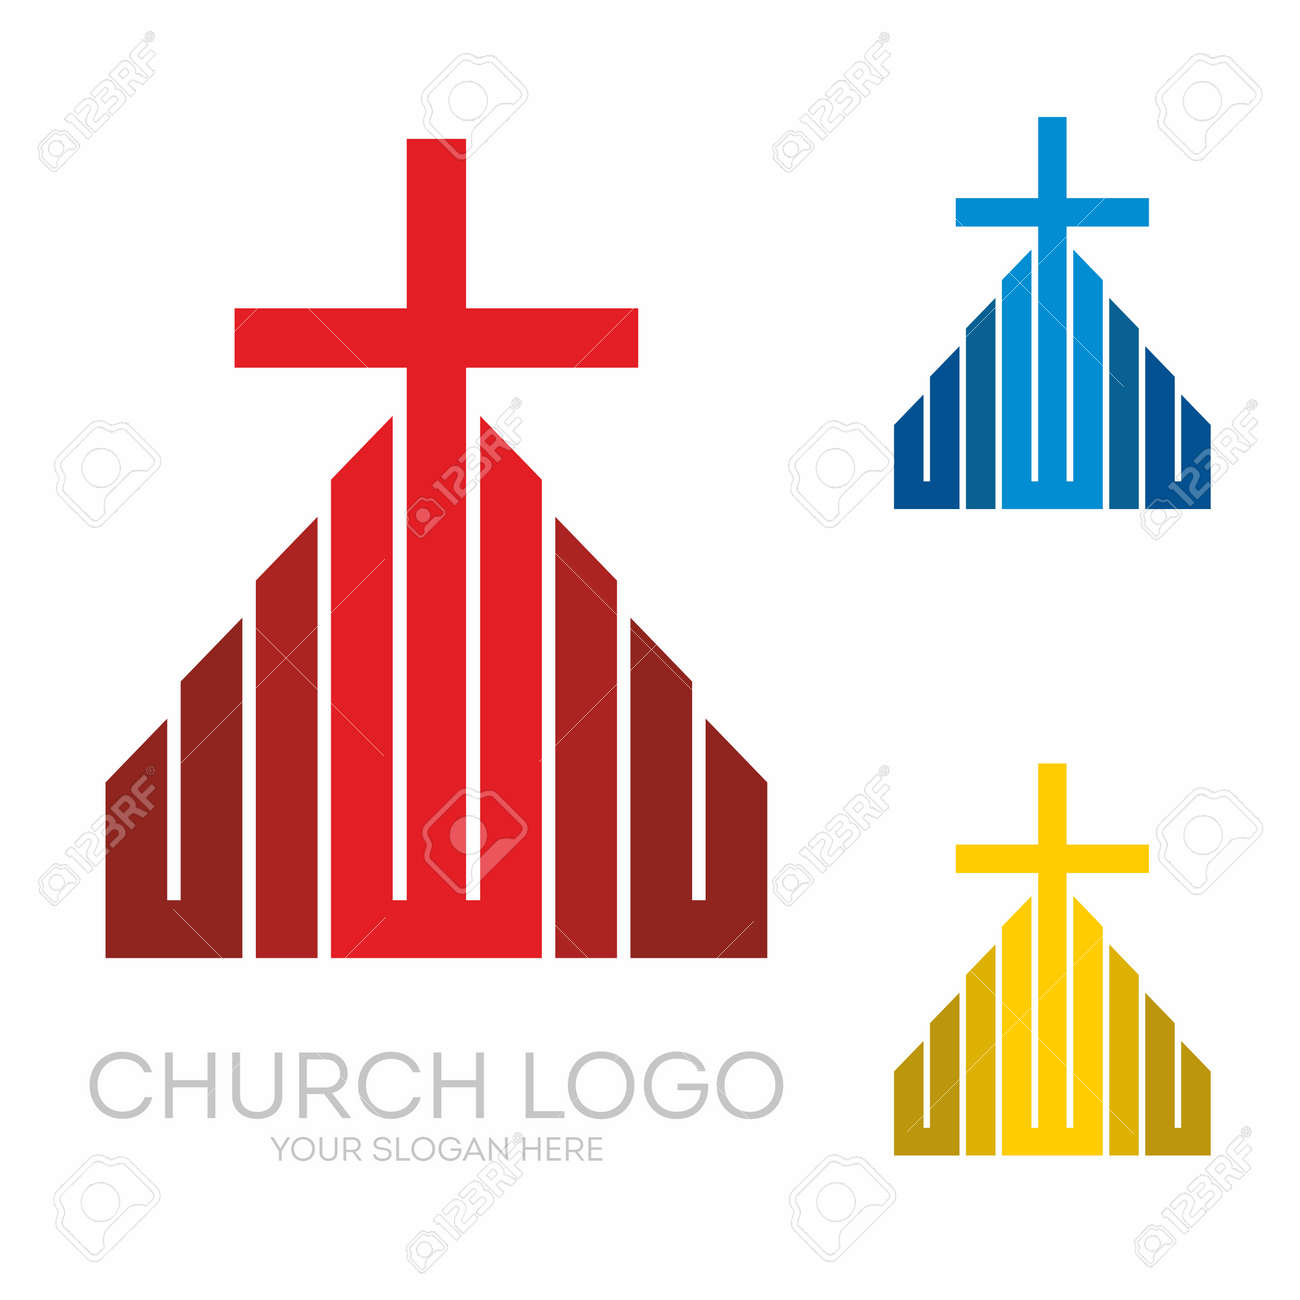 Christian symbols the altar and the cross of christ royalty free christian symbols the altar and the cross of christ stock vector 63839736 buycottarizona Image collections